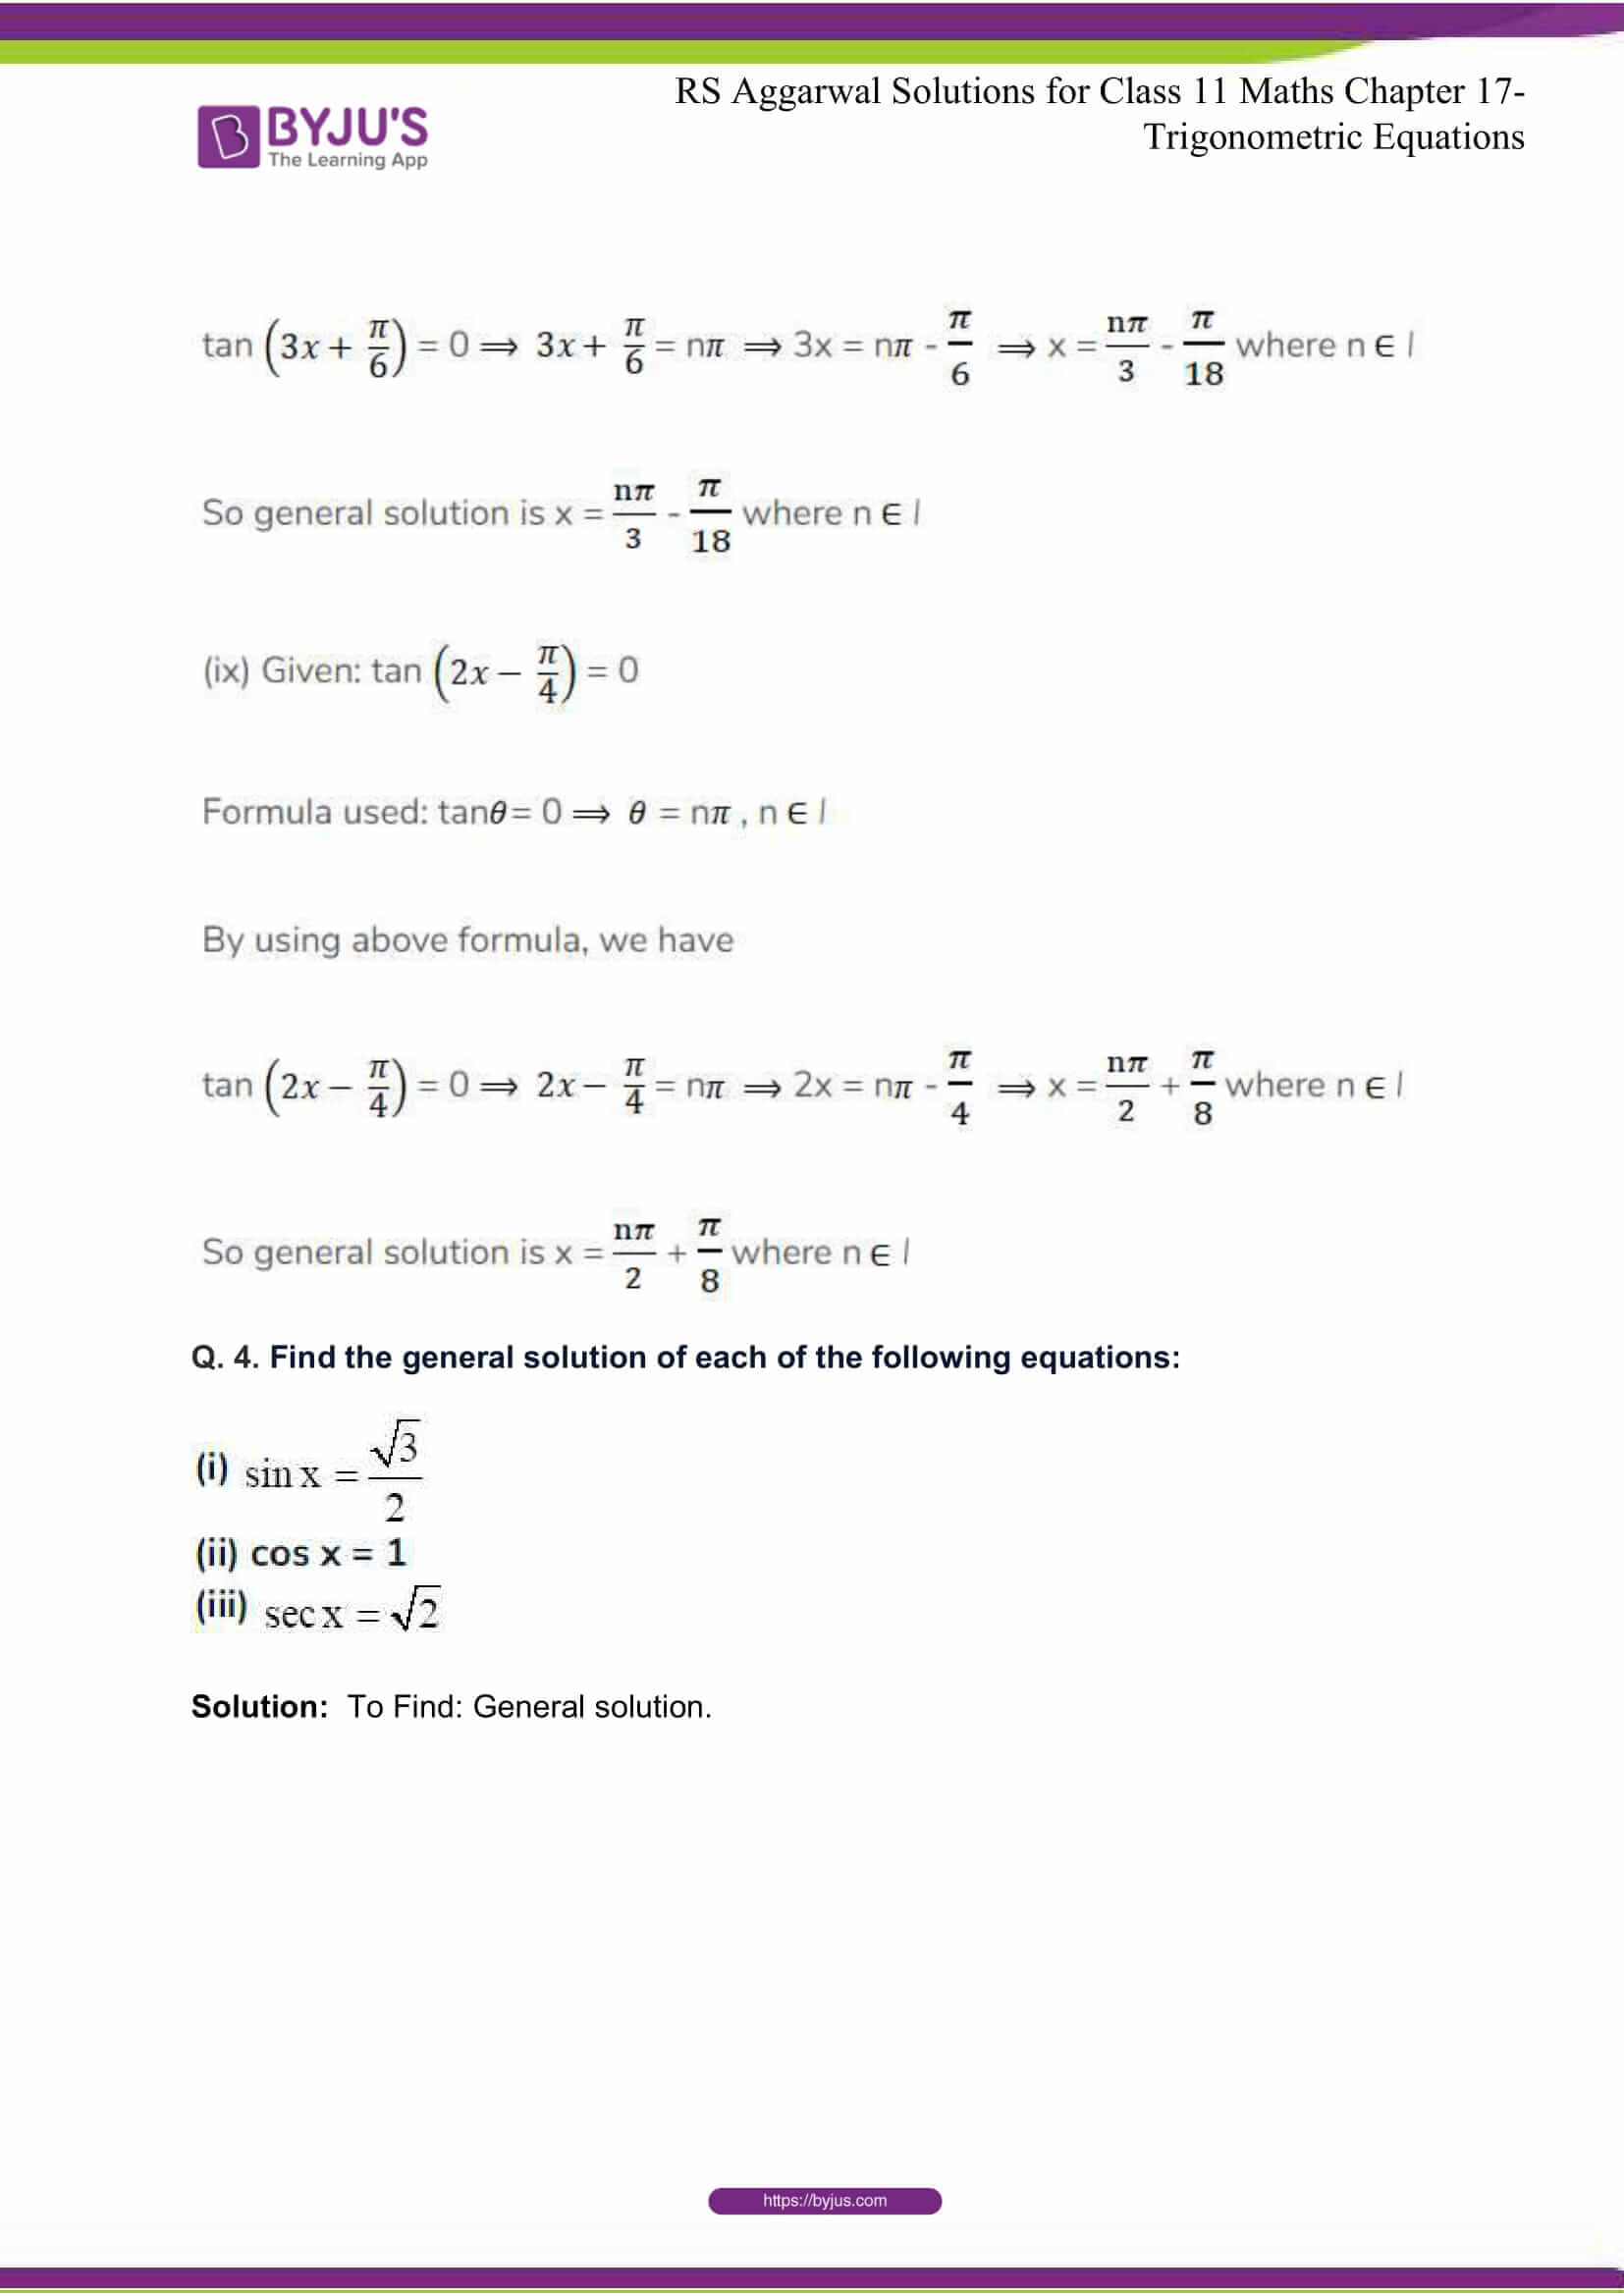 rsaggarwal solutions class 11 maths chapter 17 21